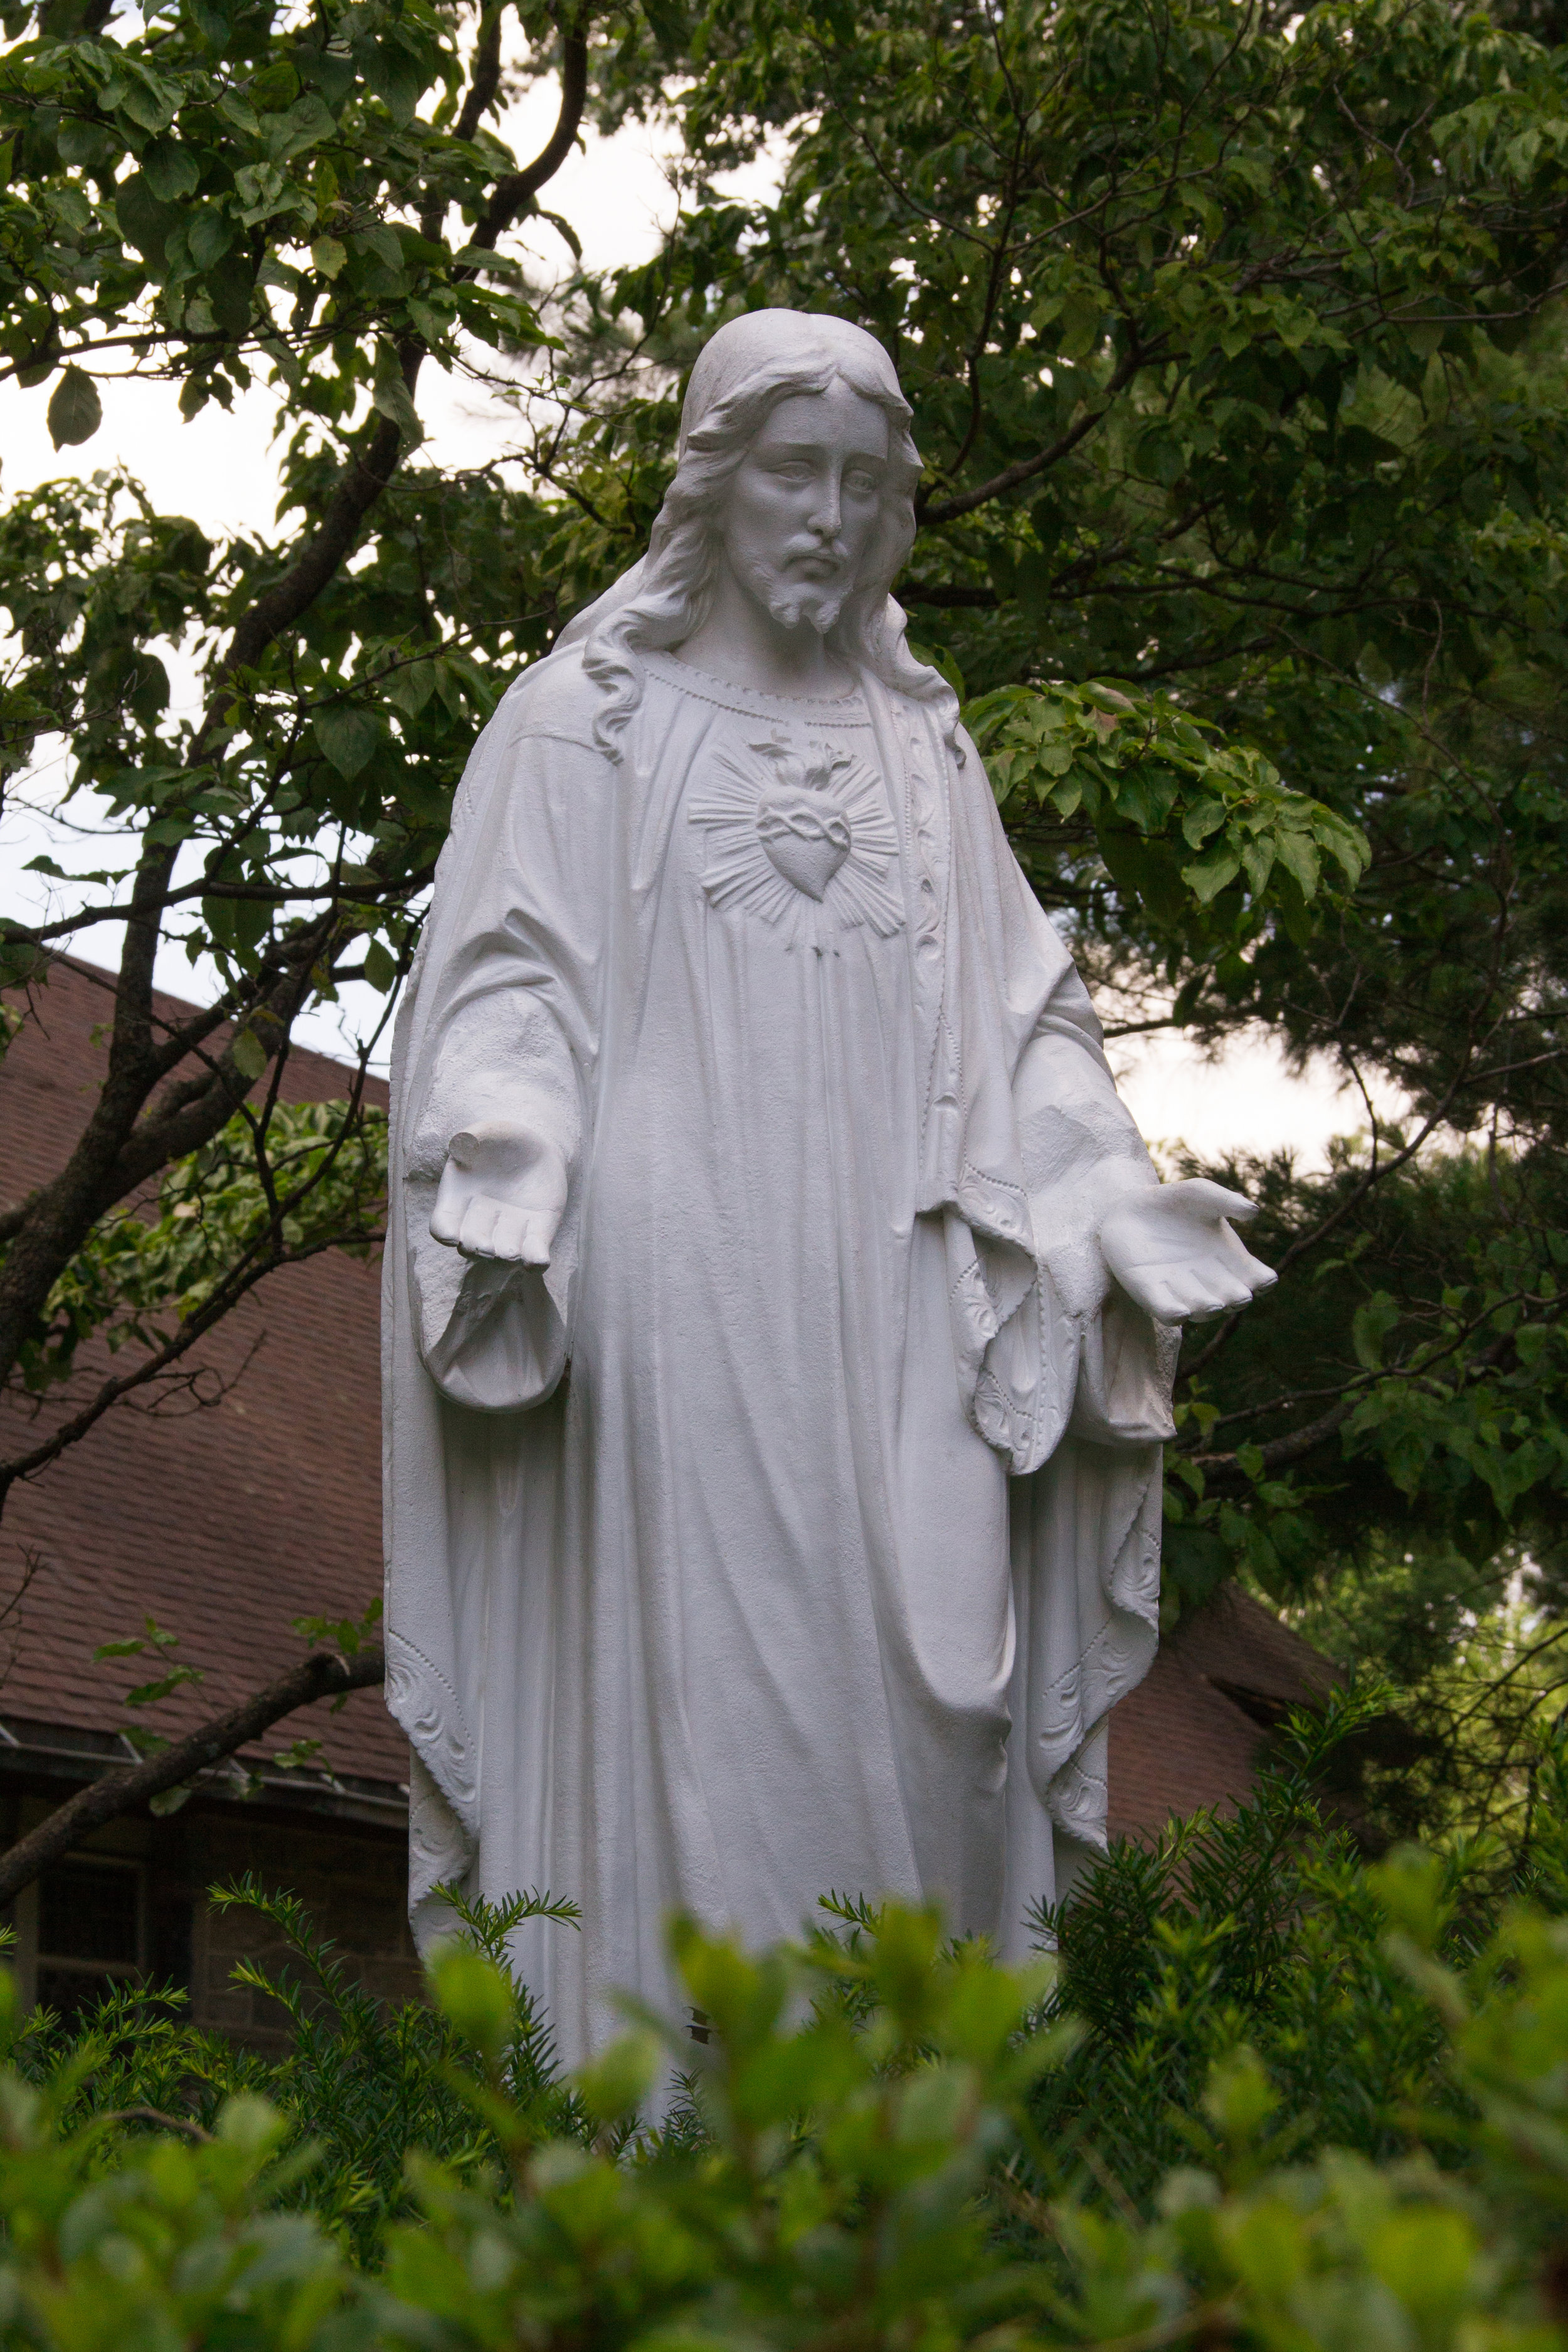 Statue of the Sacred Heart of Jesus, outside the Bruckman Memorial Chapel